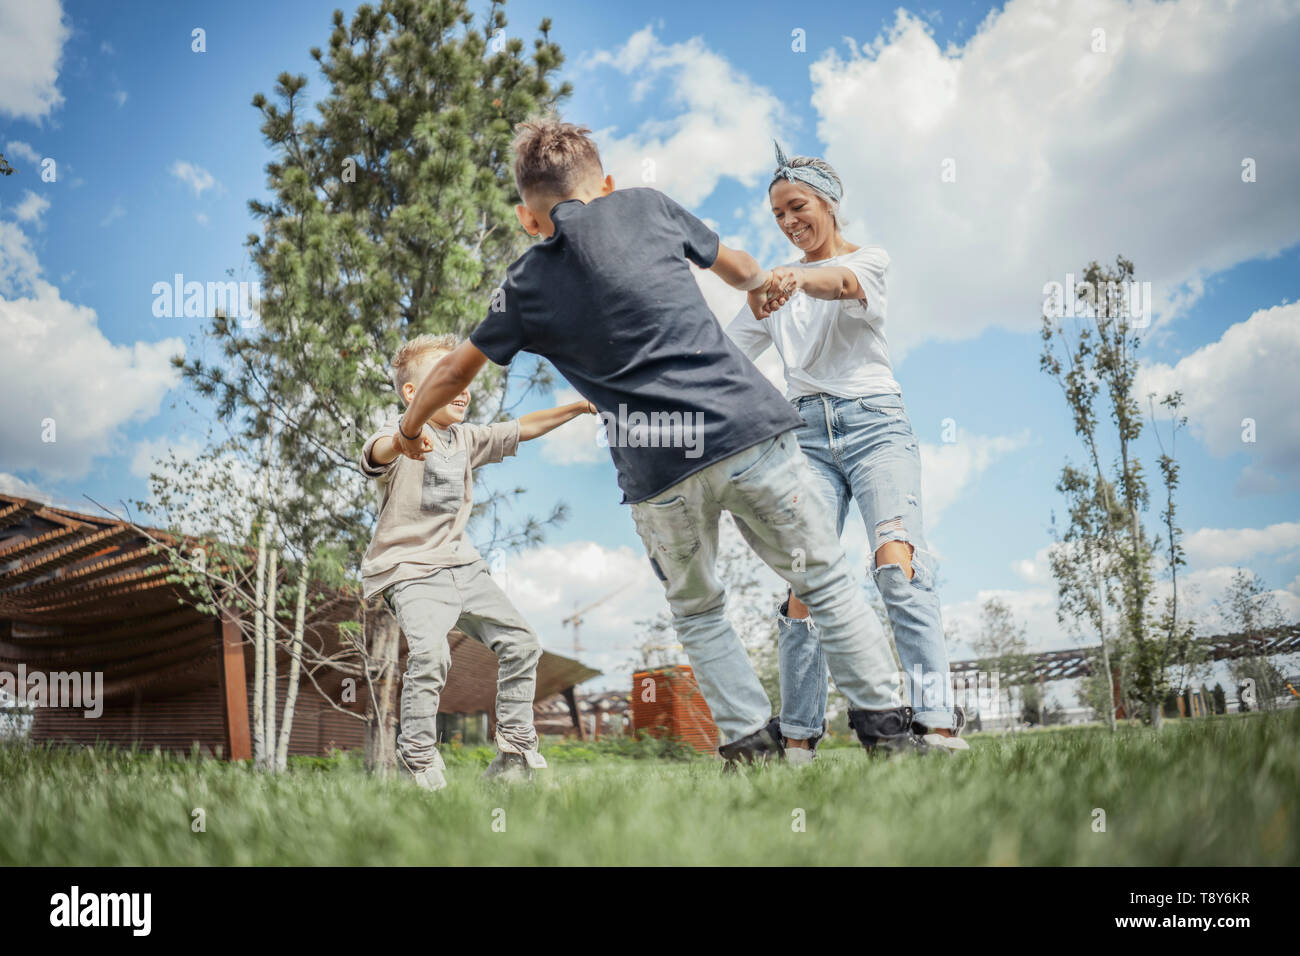 Young mum turning around, whirling and having fun with her sons at green modern park. Happy family concept. - Stock Image